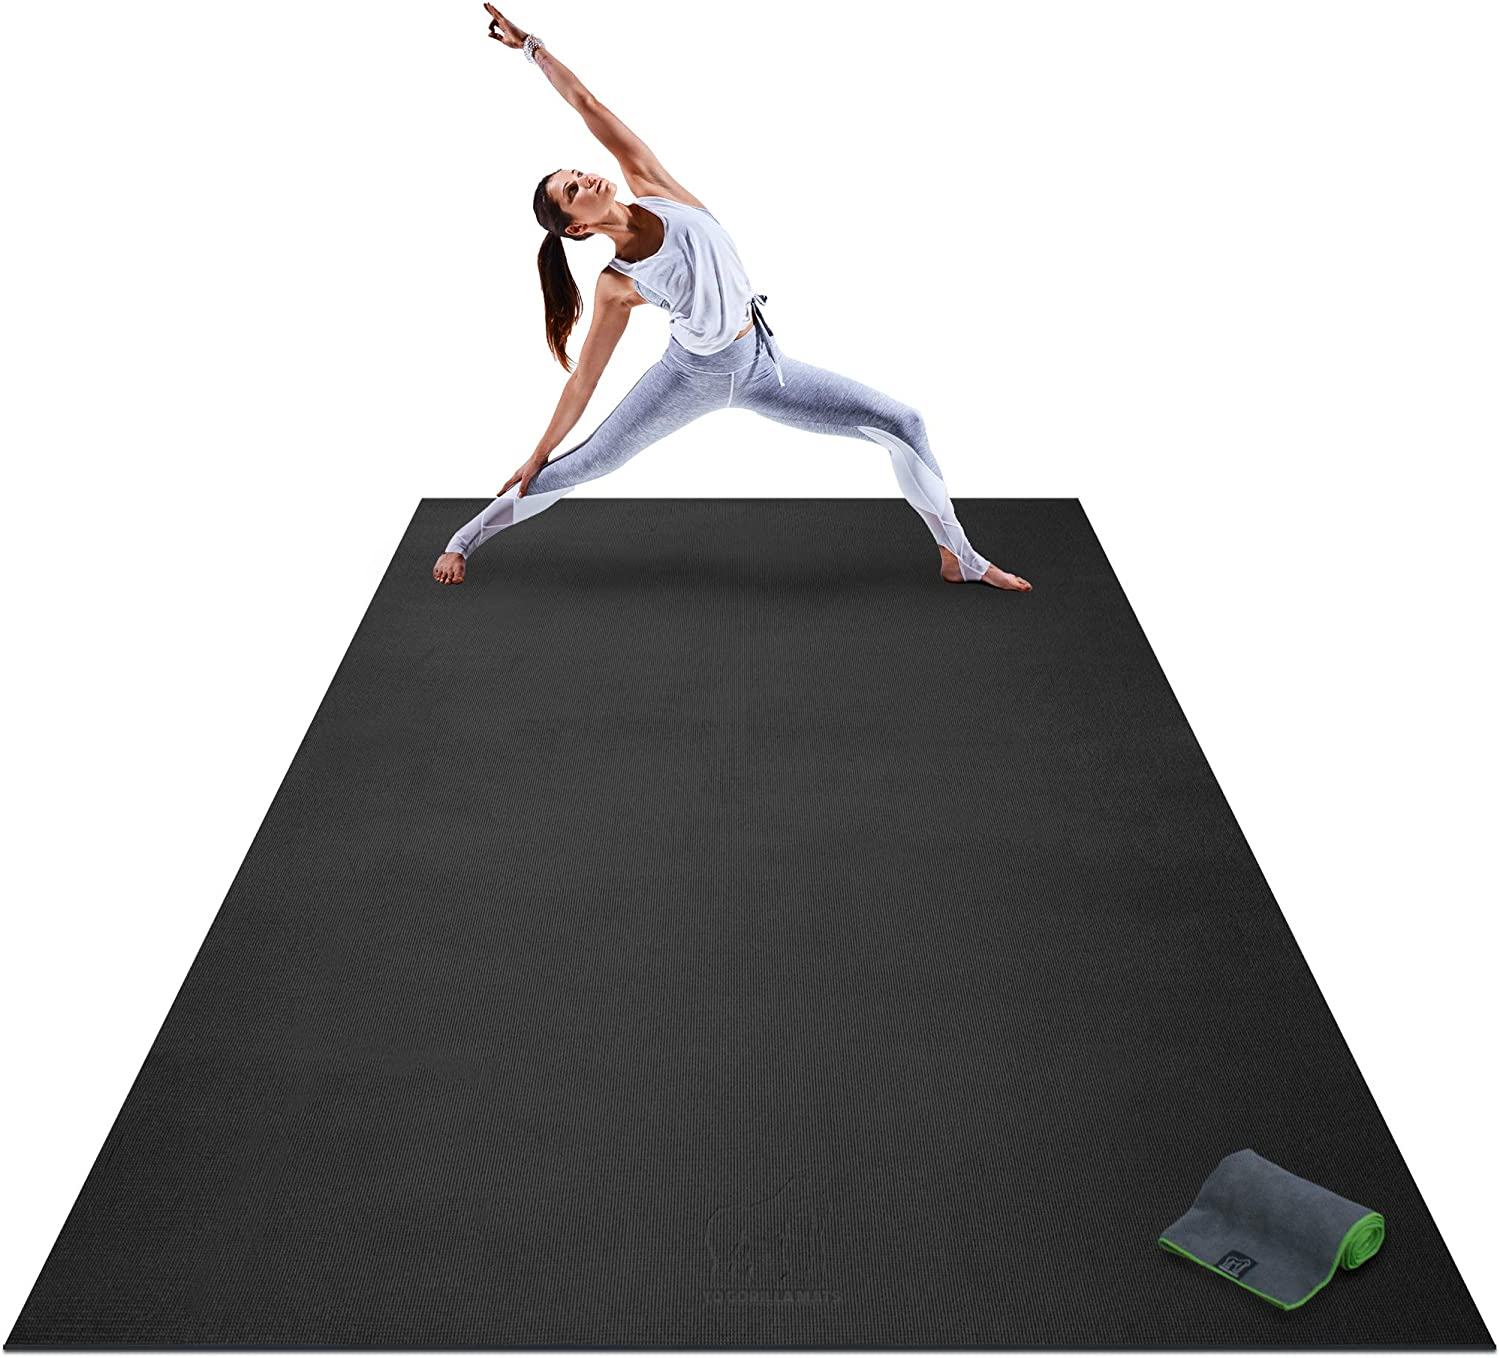 Amazon Com Premium Extra Large Yoga Mat 9 X 6 X 8mm Extra Thick Comfortable Non Toxic Non Slip Barefoot Exercise Mat Yoga Stretching Cardio Workout Mats For Home Gym Flooring